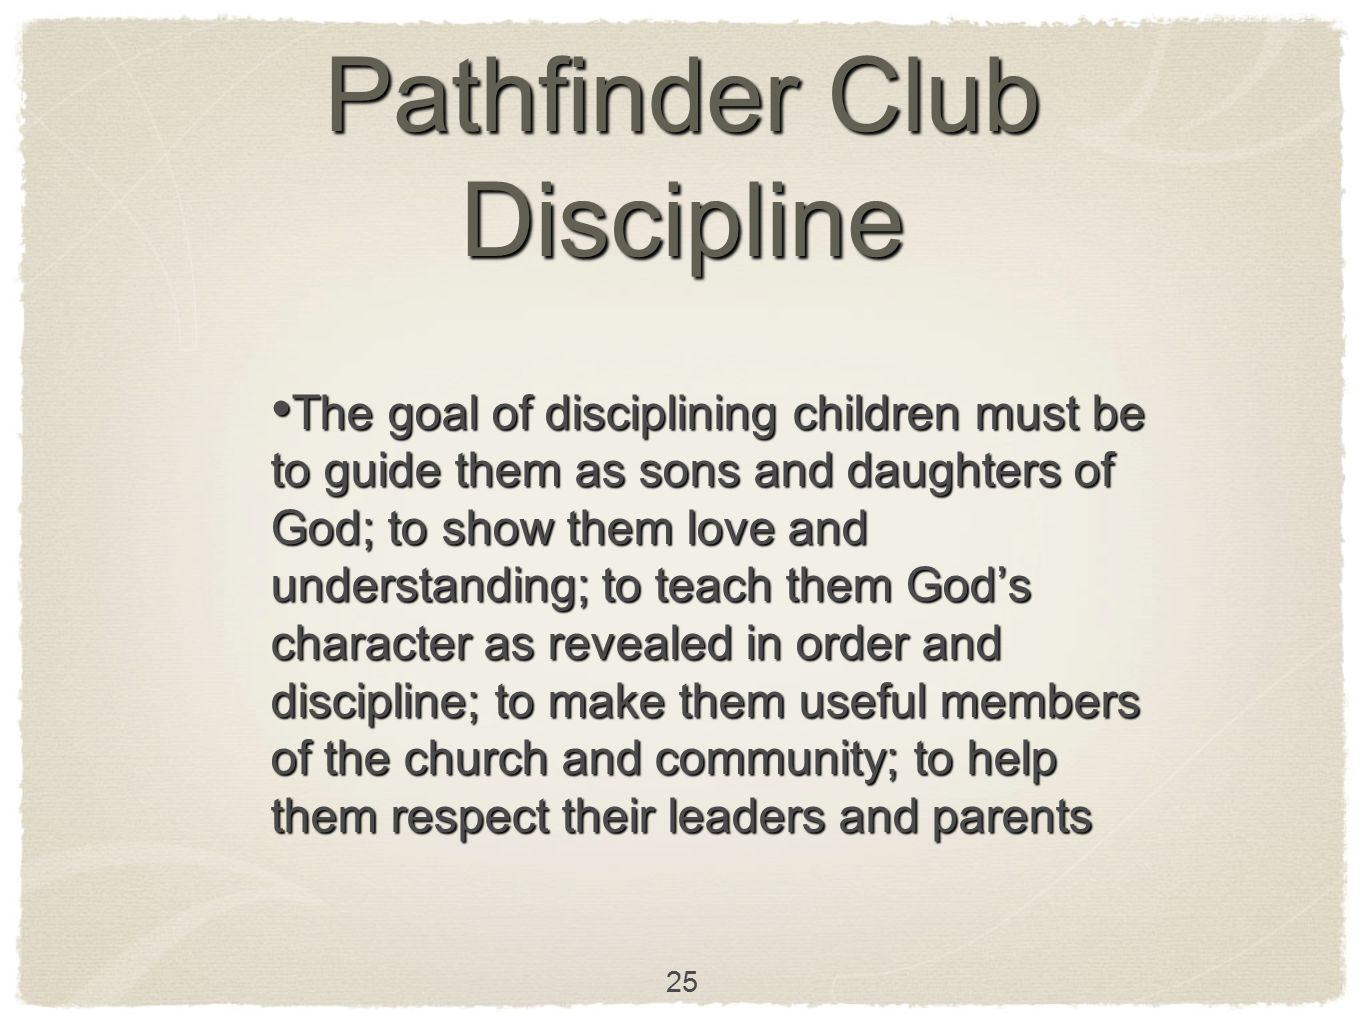 Pathfinder Club Discipline